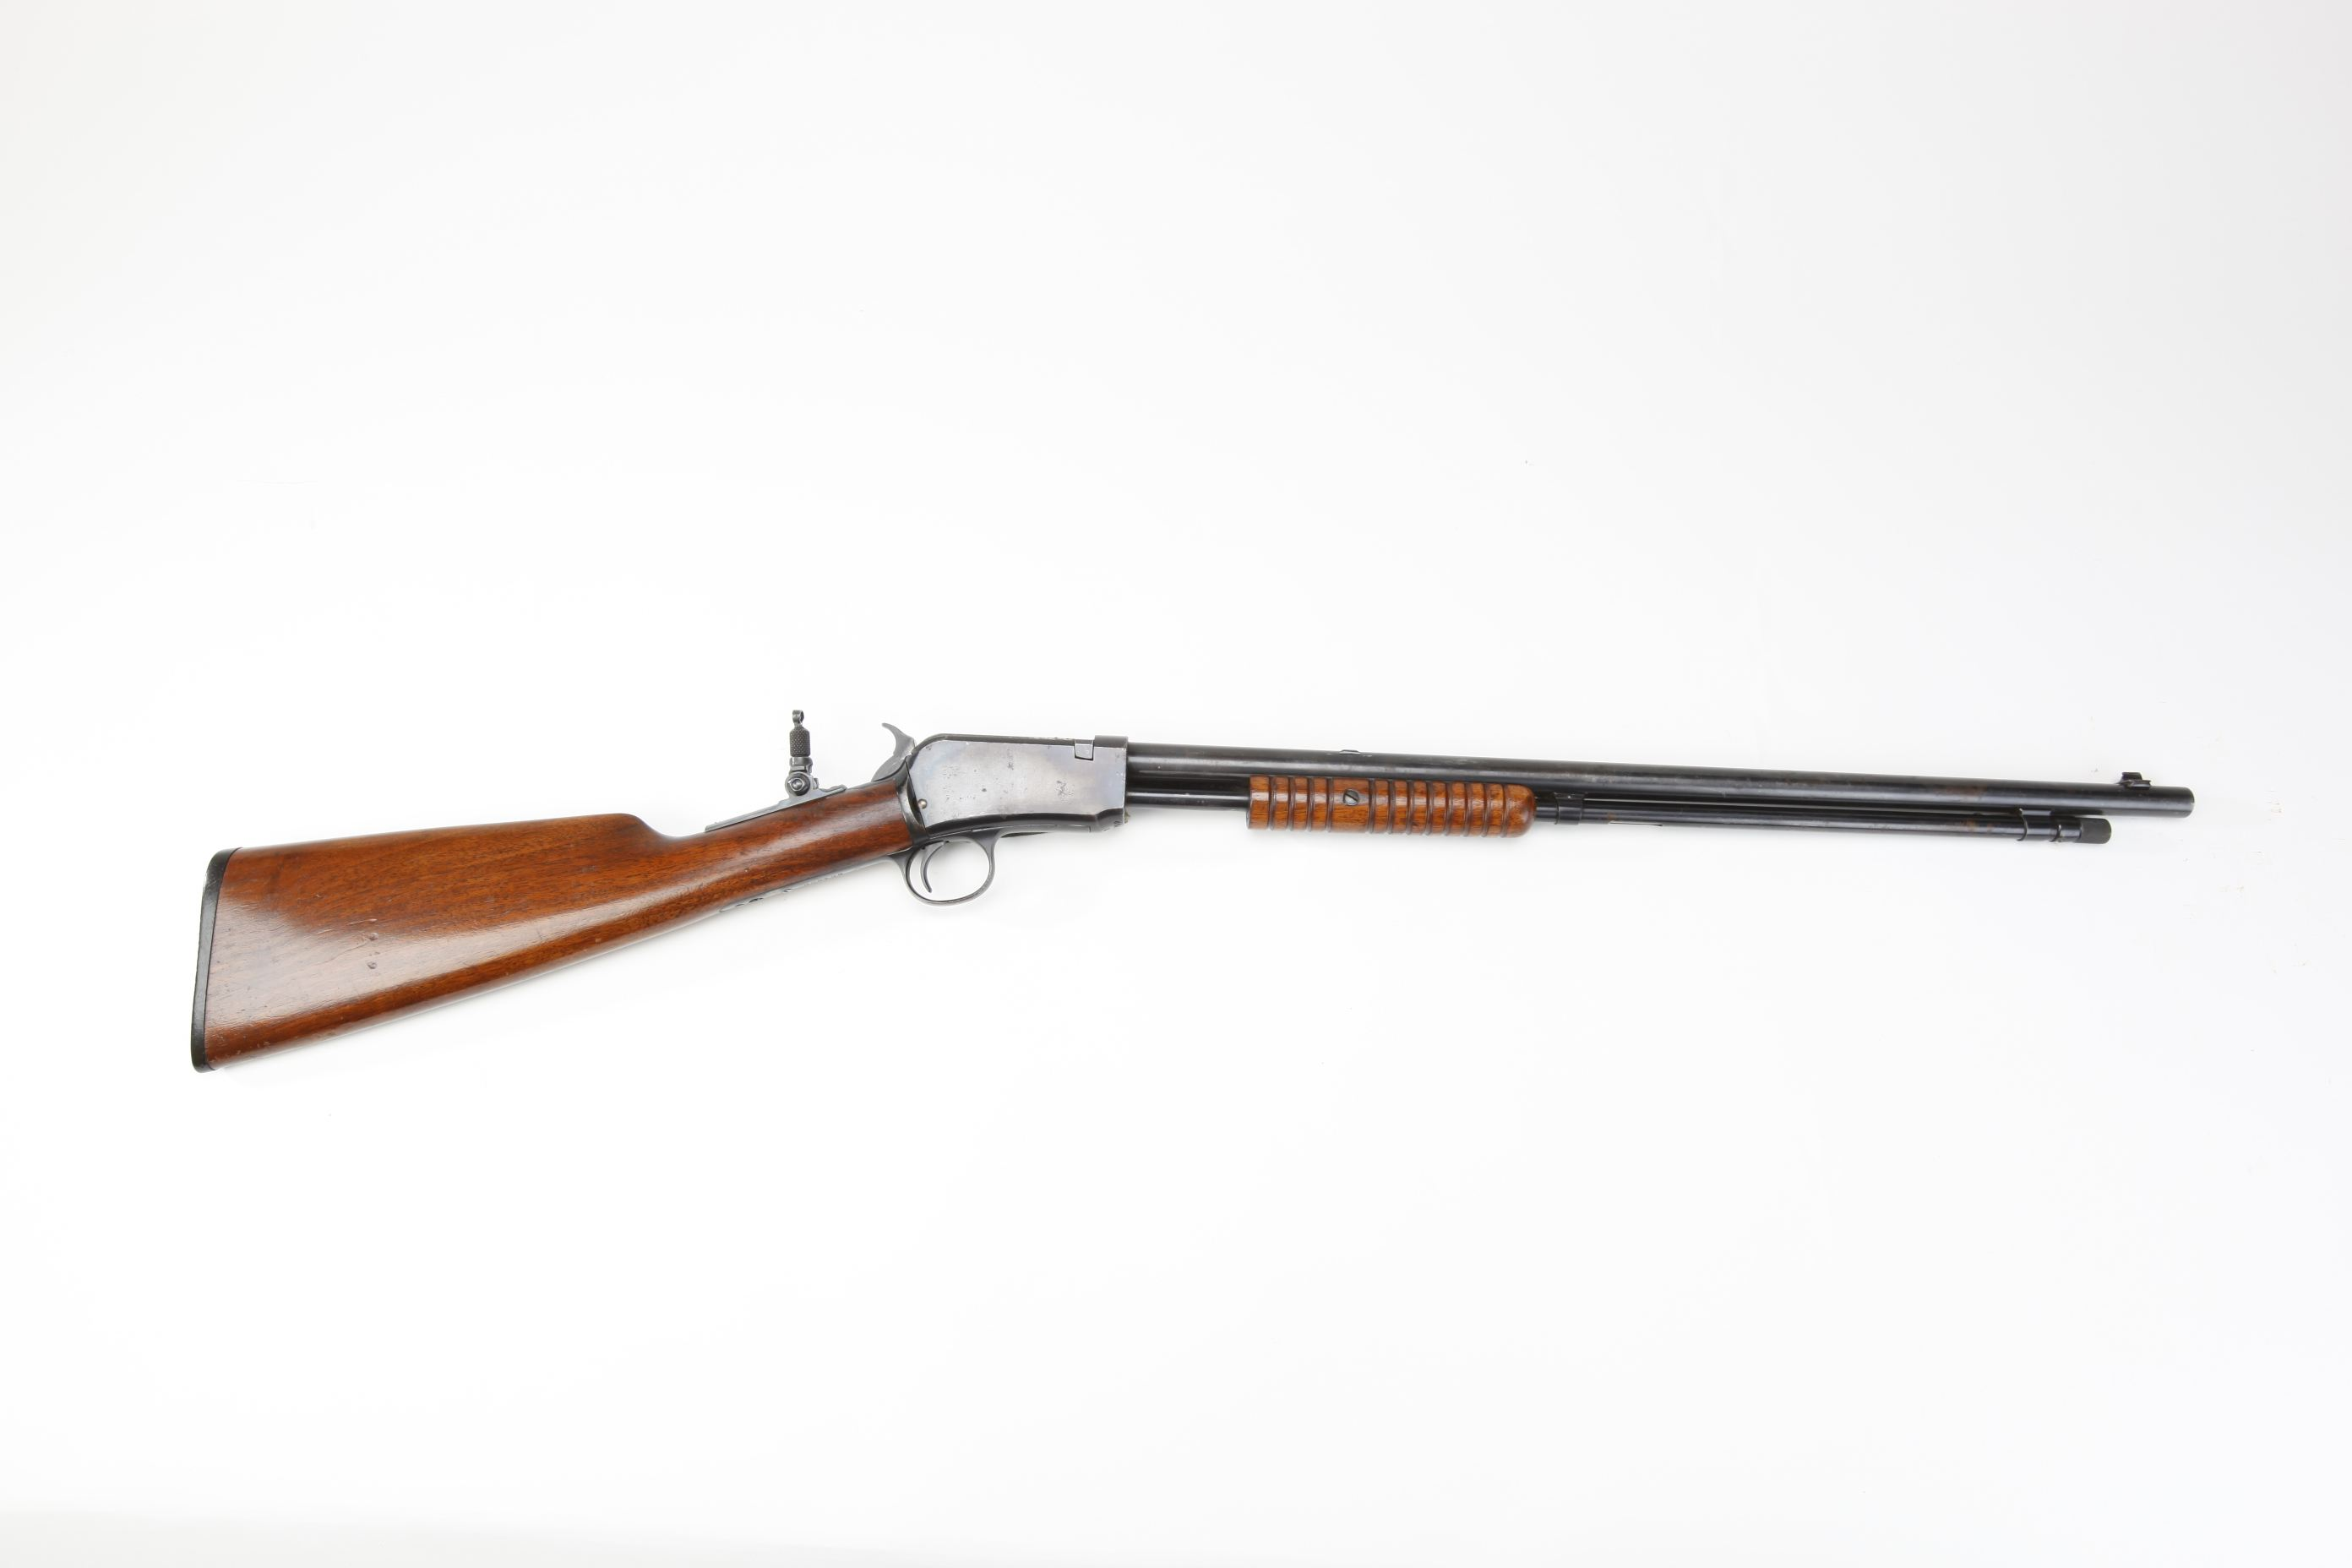 Winchester Model 1906 Slide Action Rifle (1)